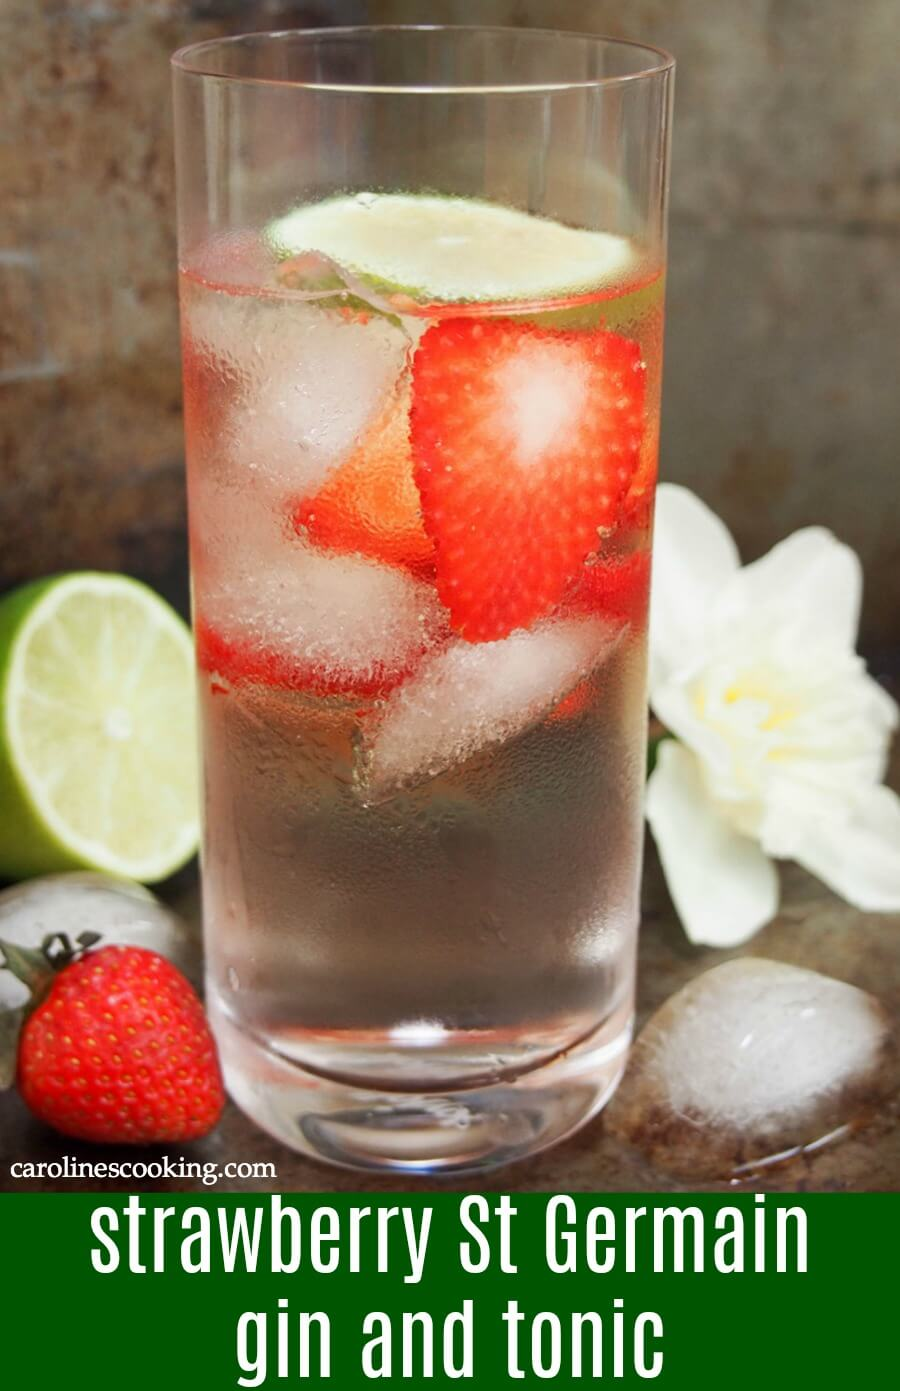 This strawberry St Germain gin and tonic is a simple twist on the classic, adding a dash of floral flavor and brightness to the glass. It's the perfect light cocktail for spring or summer sipping. #ad #brunchweek #cocktail #ginandtonic